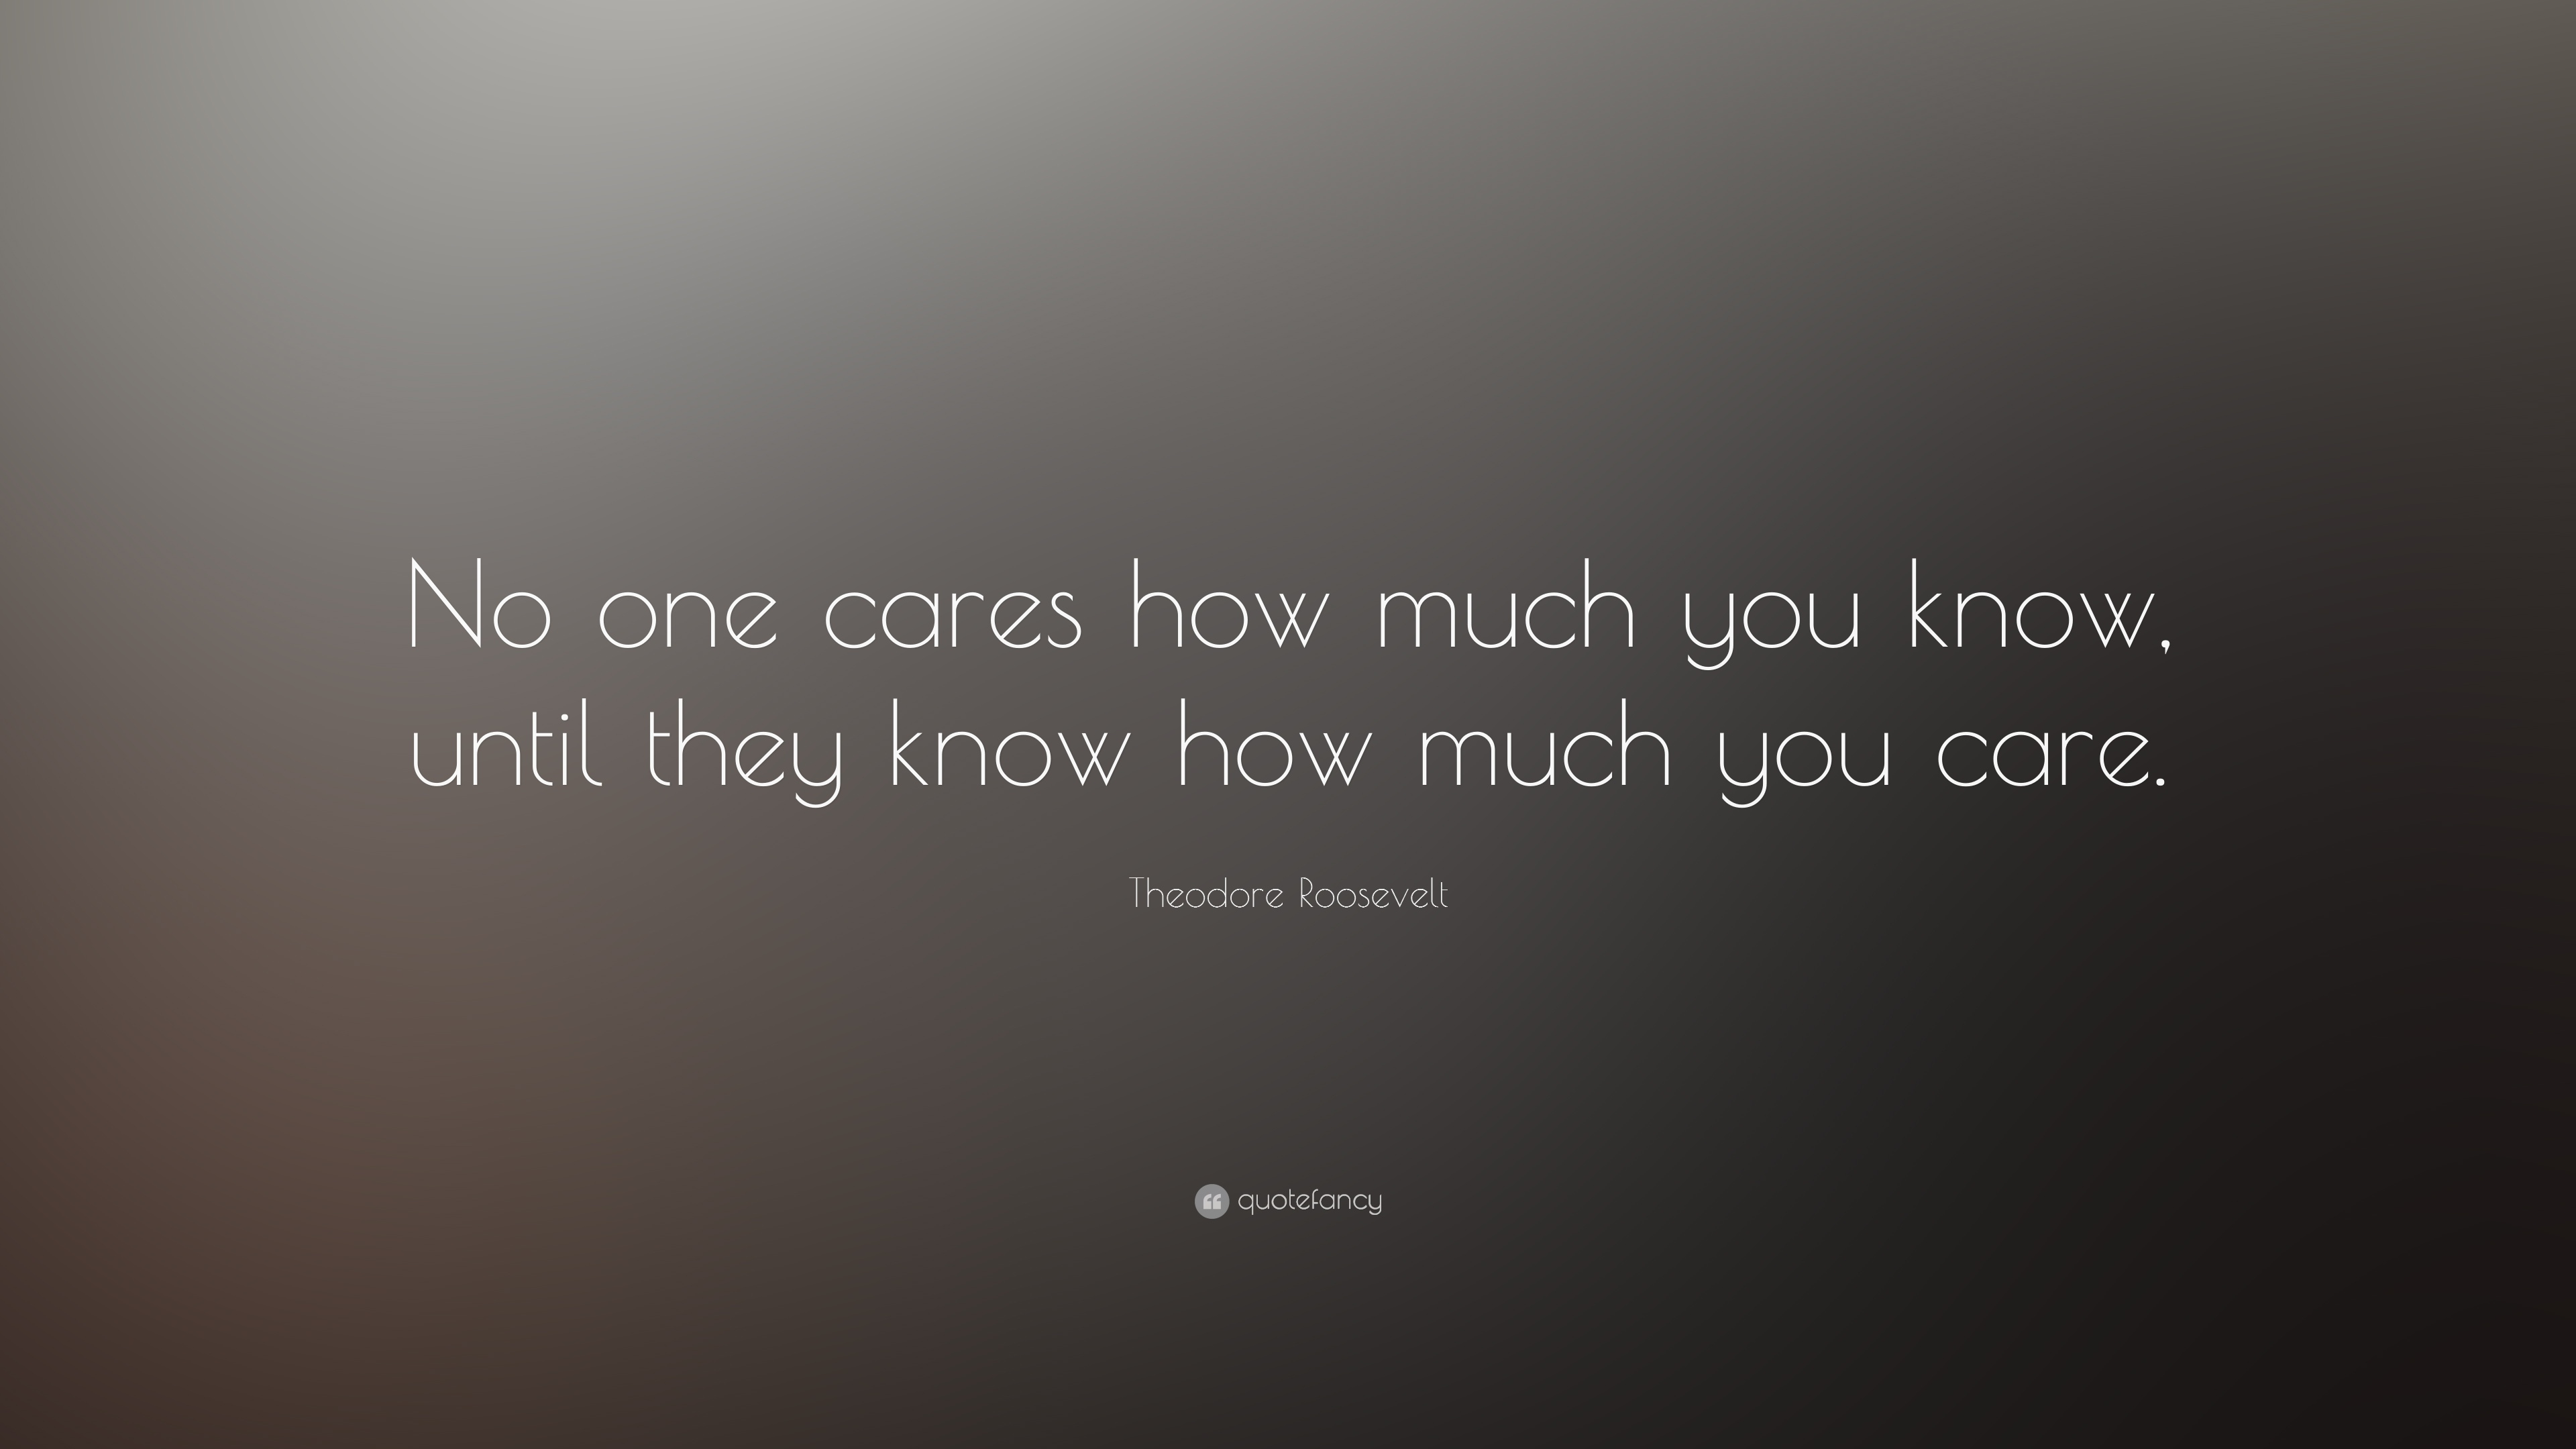 Theodore Roosevelt Quote No One Cares How Much You Know Until